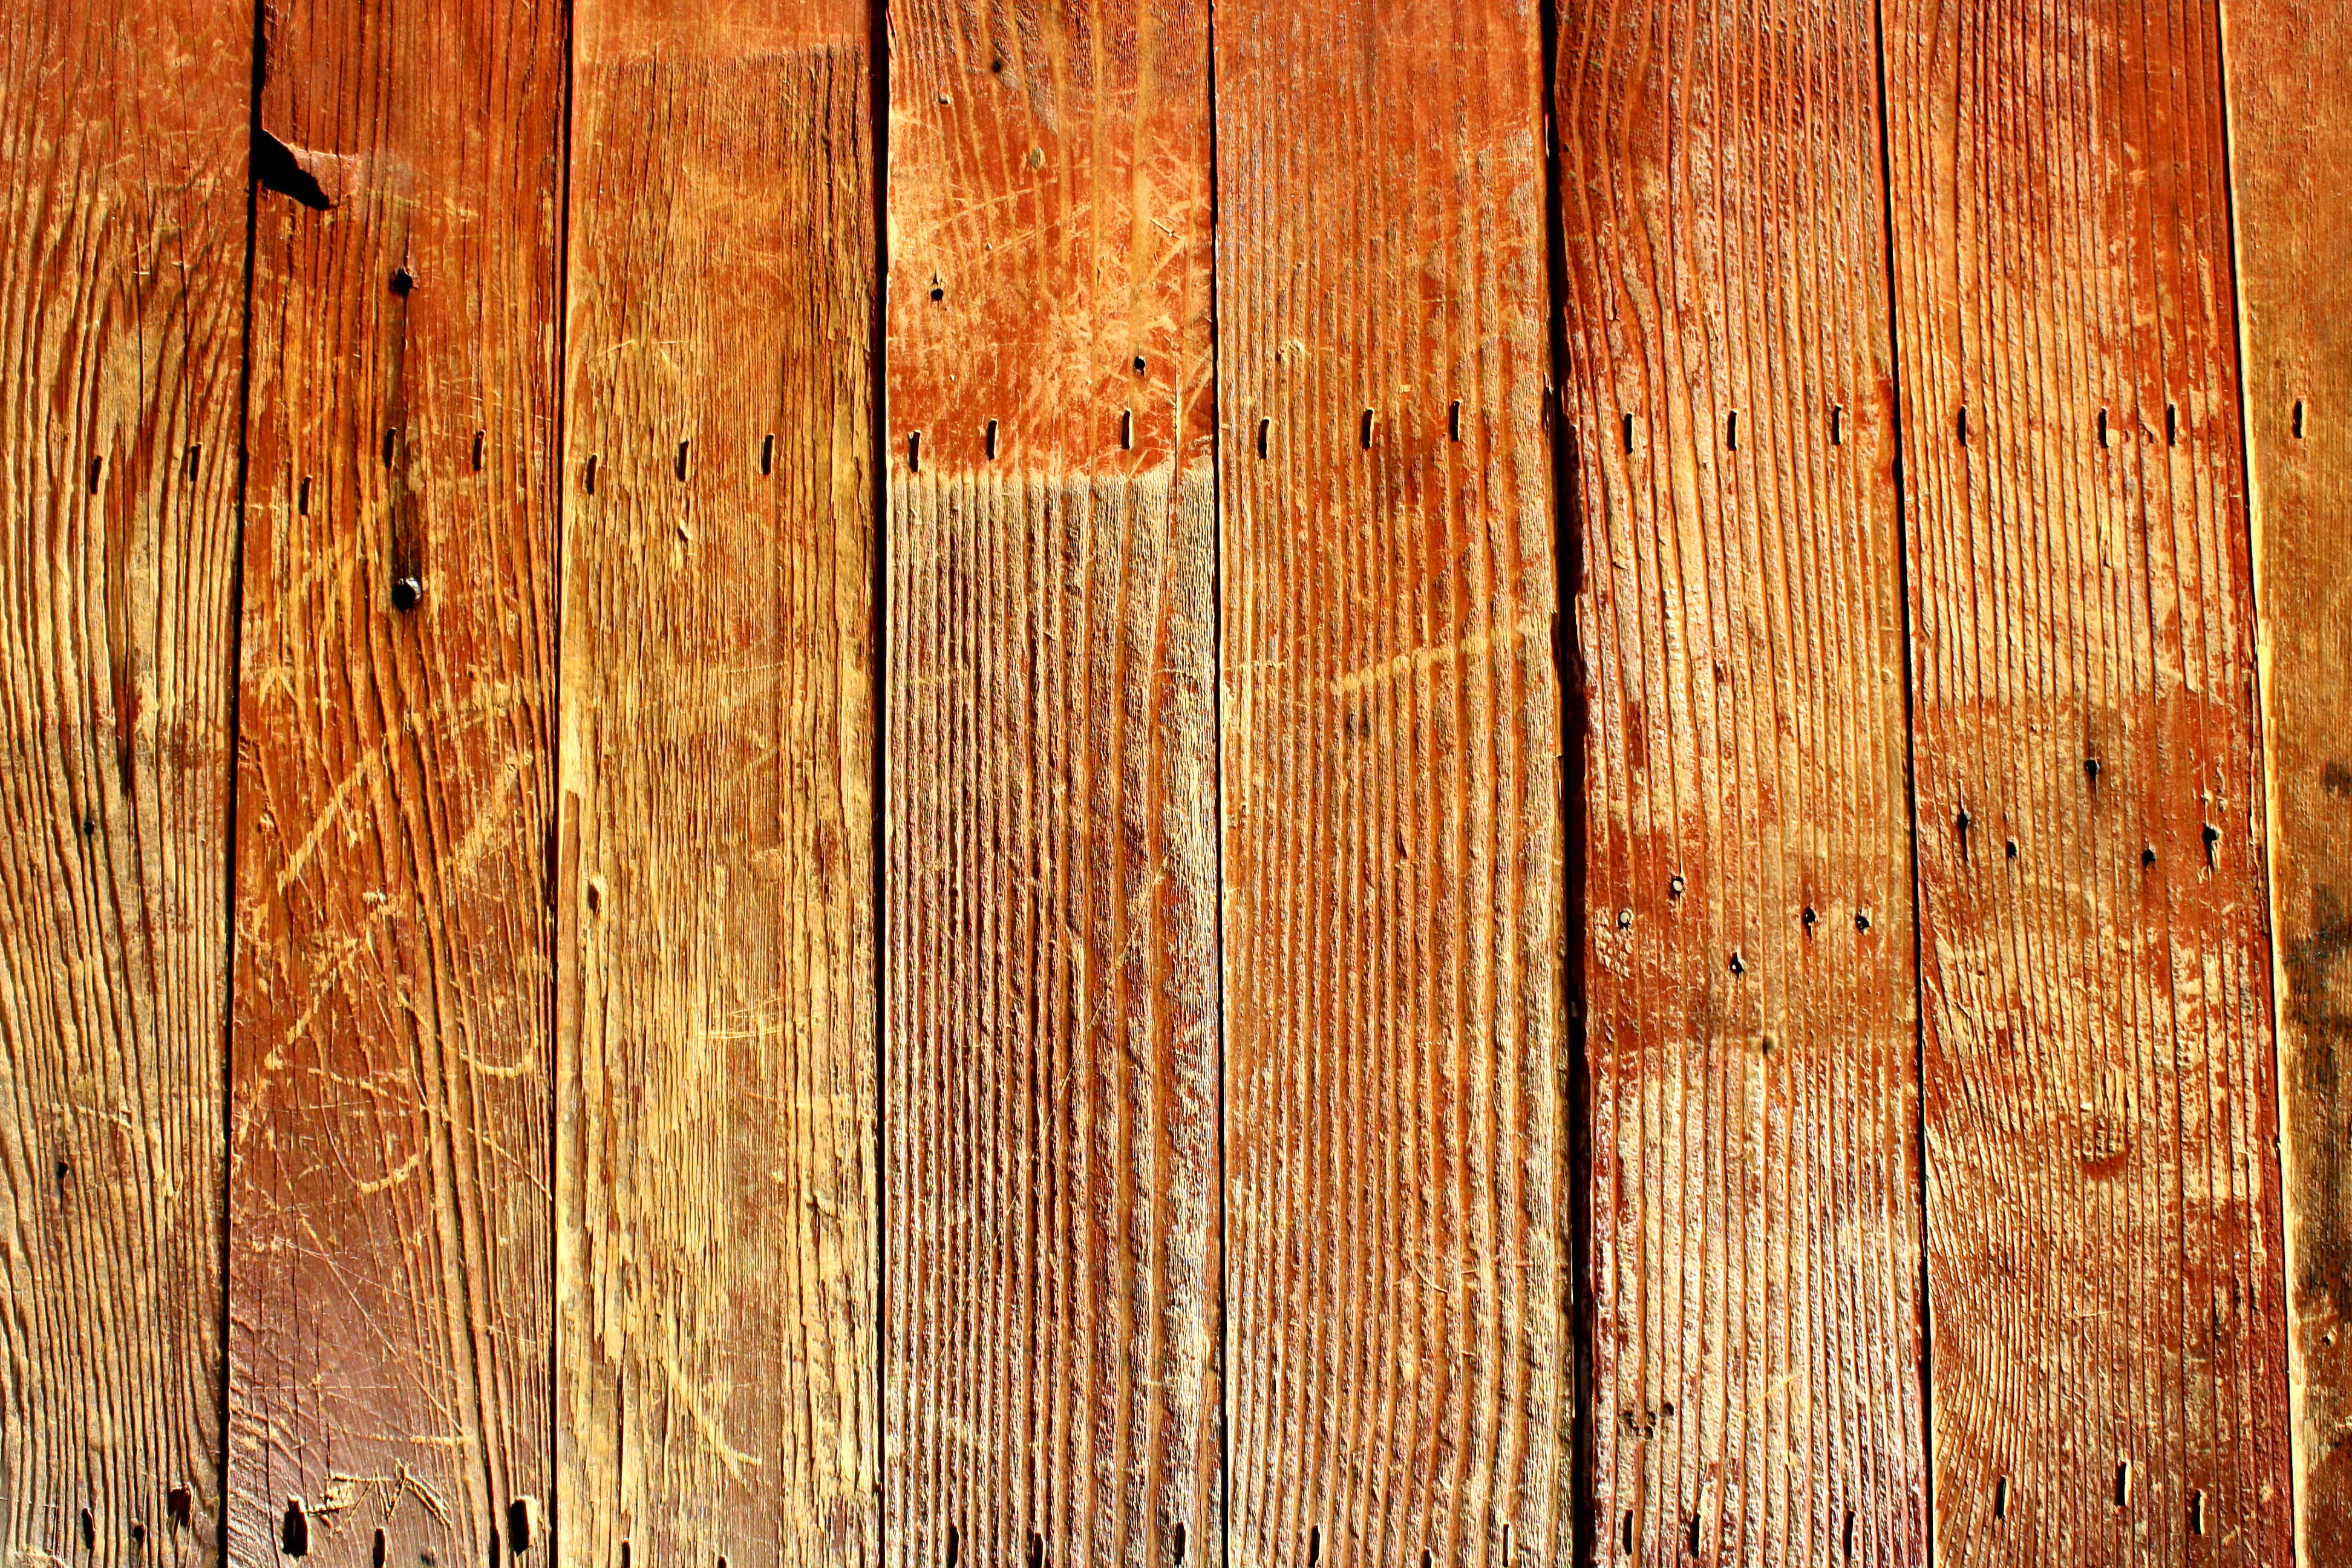 Scratched Old Wooden Boards Texture Picture   Free Photograph   Photos